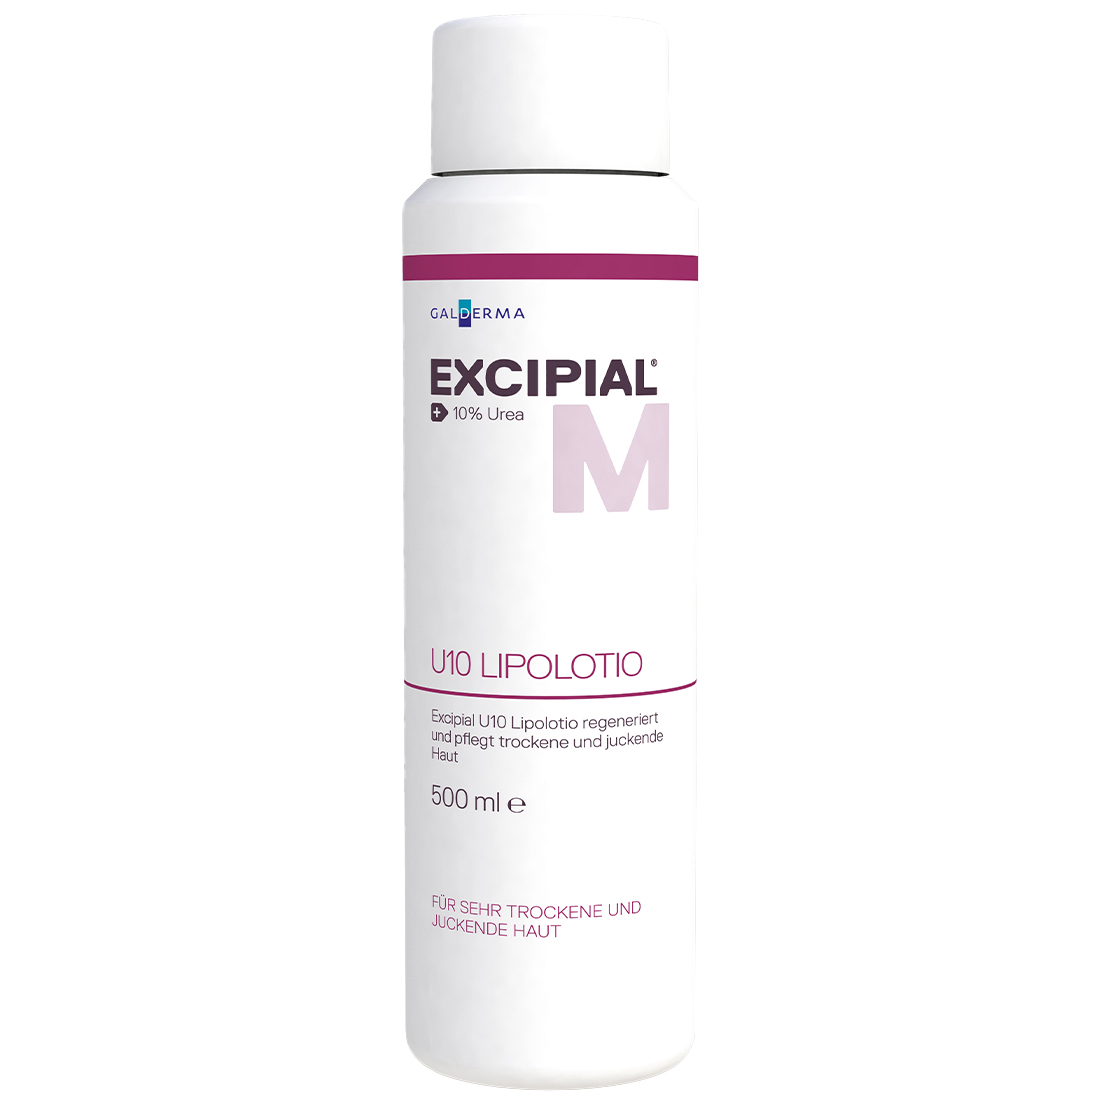 excipial__0001s_0000_EXC_39L_U10_LIPOLOTION_500ml_D